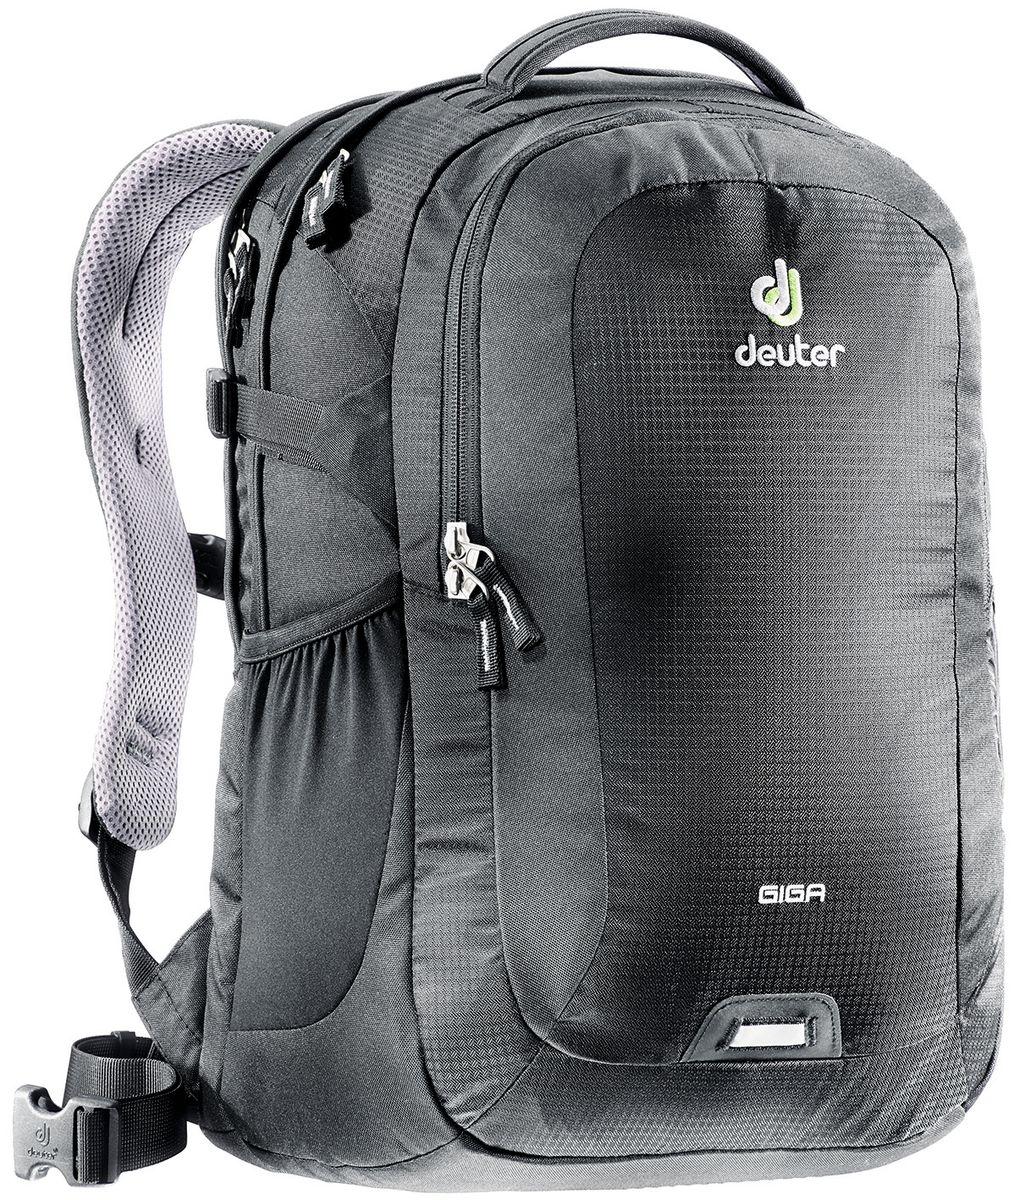 Рюкзак Deuter Daypacks Giga, цвет: черный, 28 л smoby машинка конструктор vroom planet